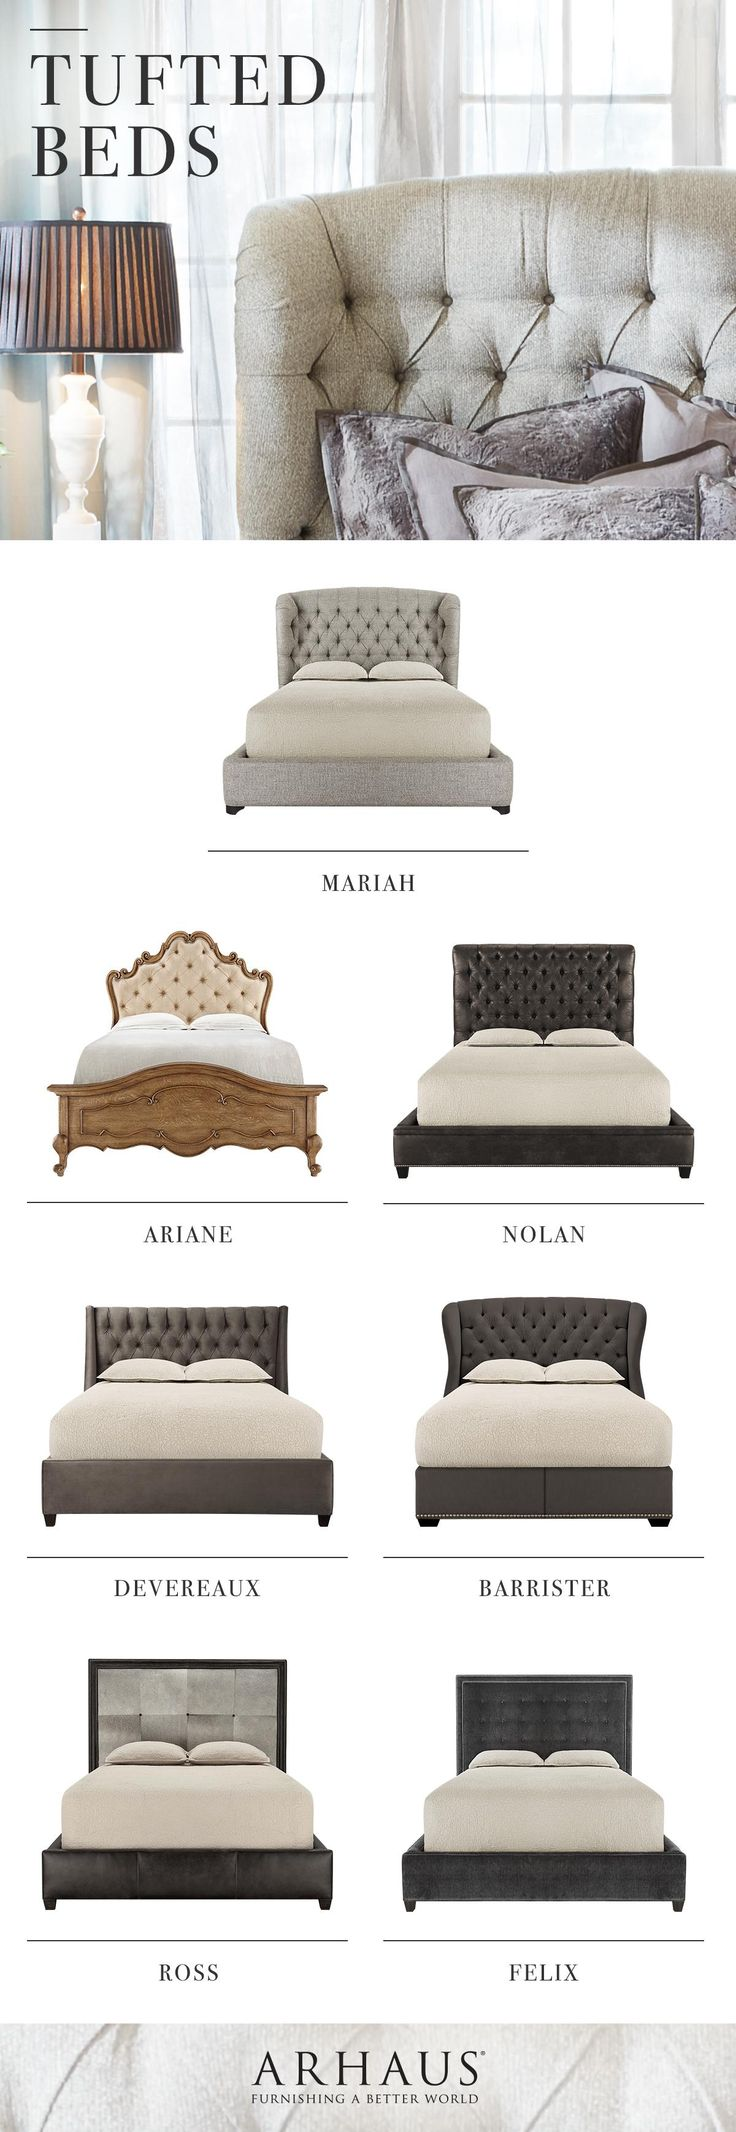 Love the tufted detail especially on a headboard! Choose your style! Shop beds and headboards at Arhaus.